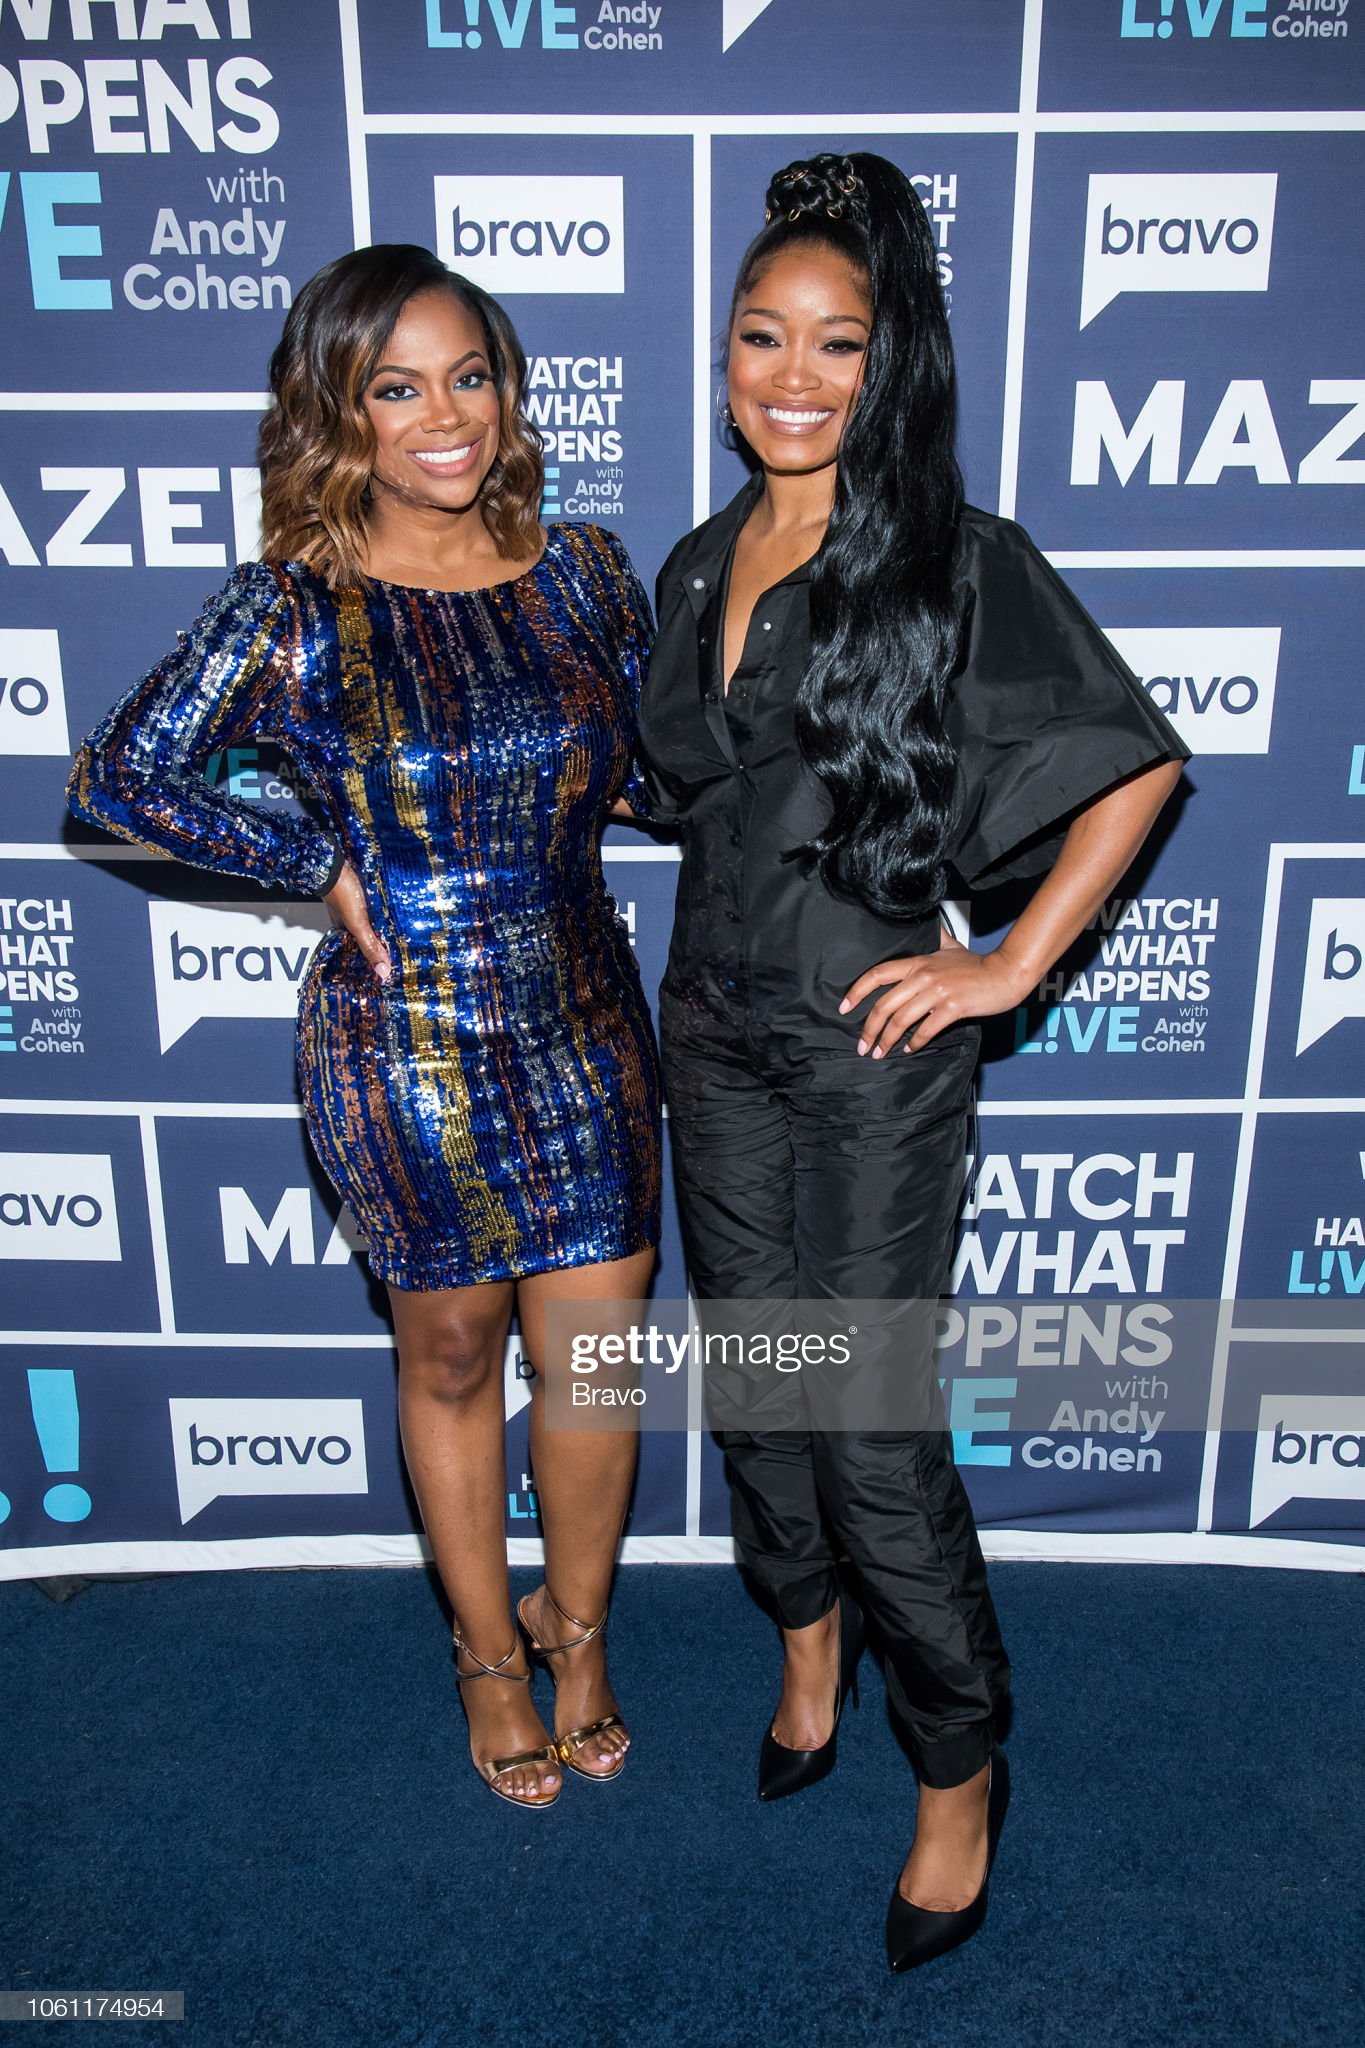 ¿Cuánto mide Keke Palmer? - Real height Pictured-kandi-burruss-and-keke-palmer-picture-id1061174954?s=2048x2048